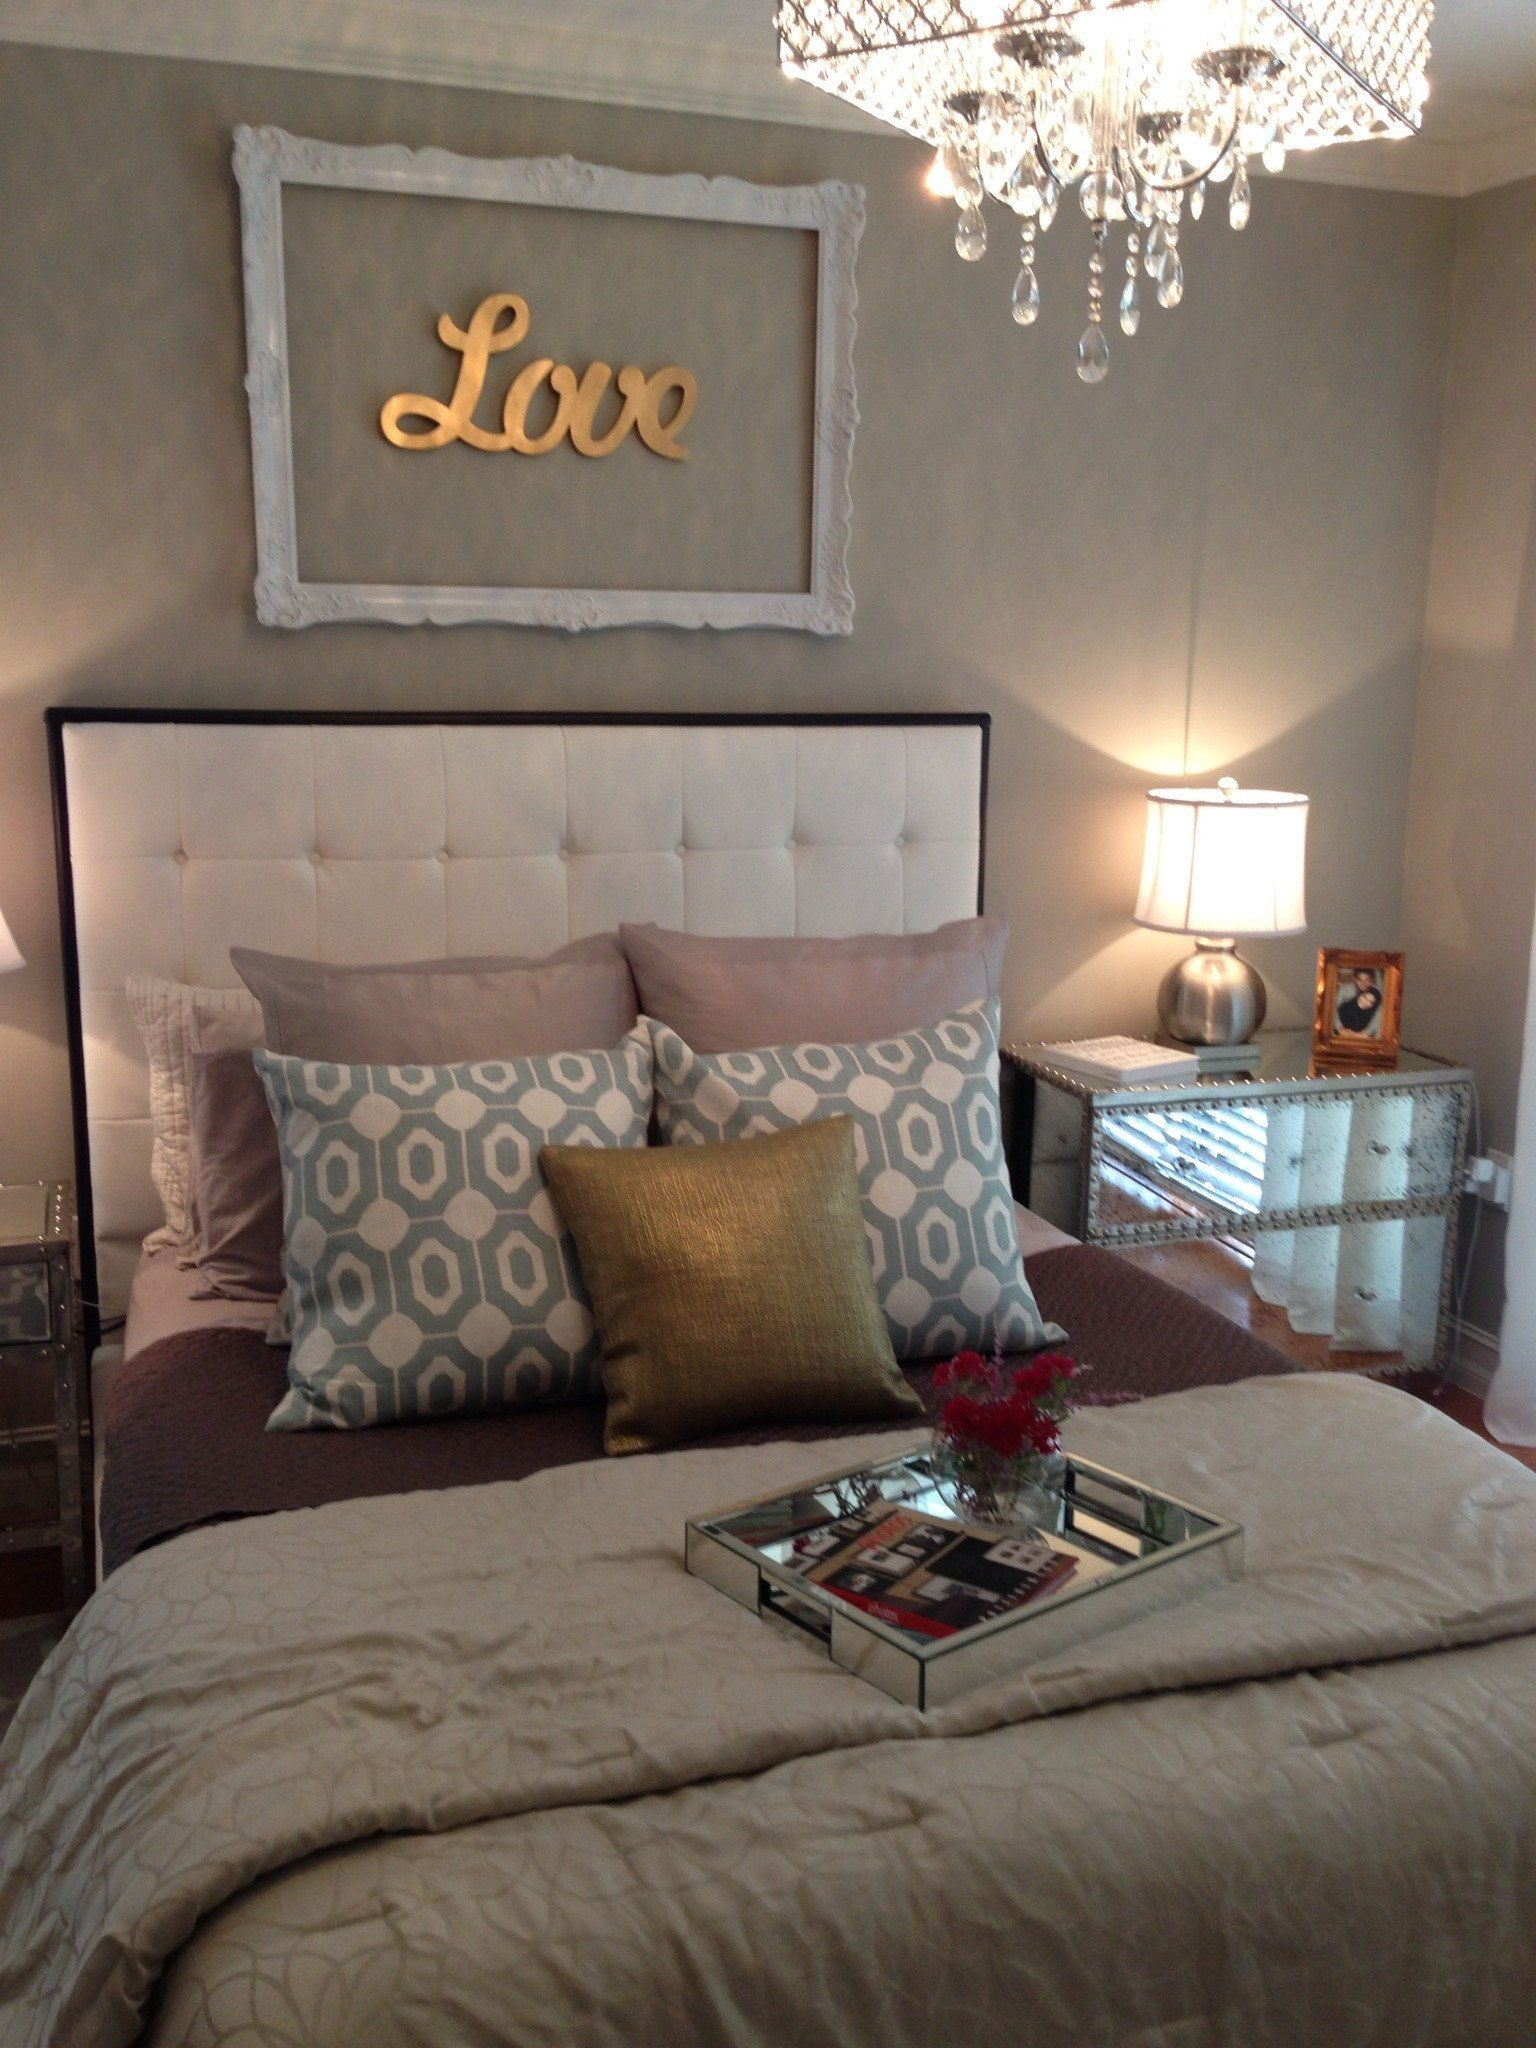 Red And Purple Bedroom Decorating Ideas Rooms White Ideas Decor Diy Grey Wall Winsome Cool Bedroom Furniture Gold Bedroom Decor Interior Decorating Living Room